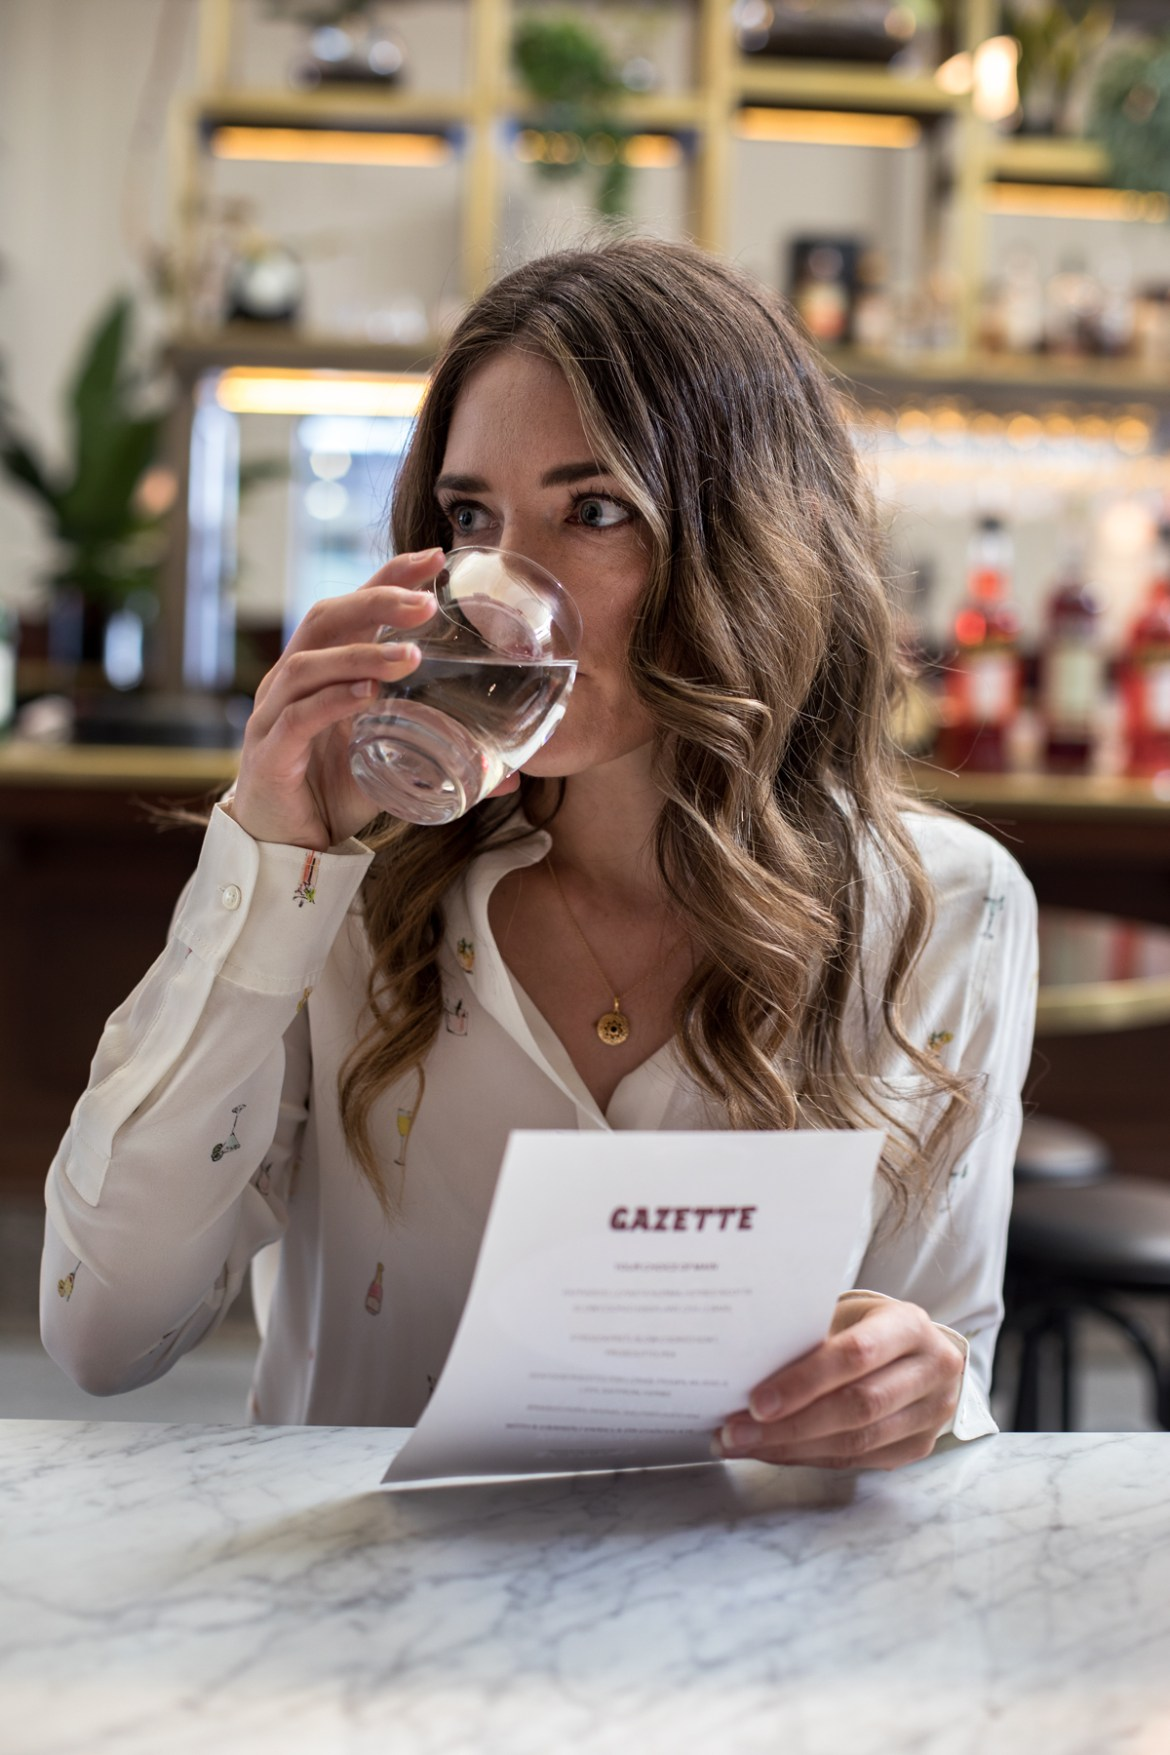 Jenelle Witty from Inspiring Wit at Gazette in Print Hall in Perth for the express lunch special as a part of Spring in the City festival